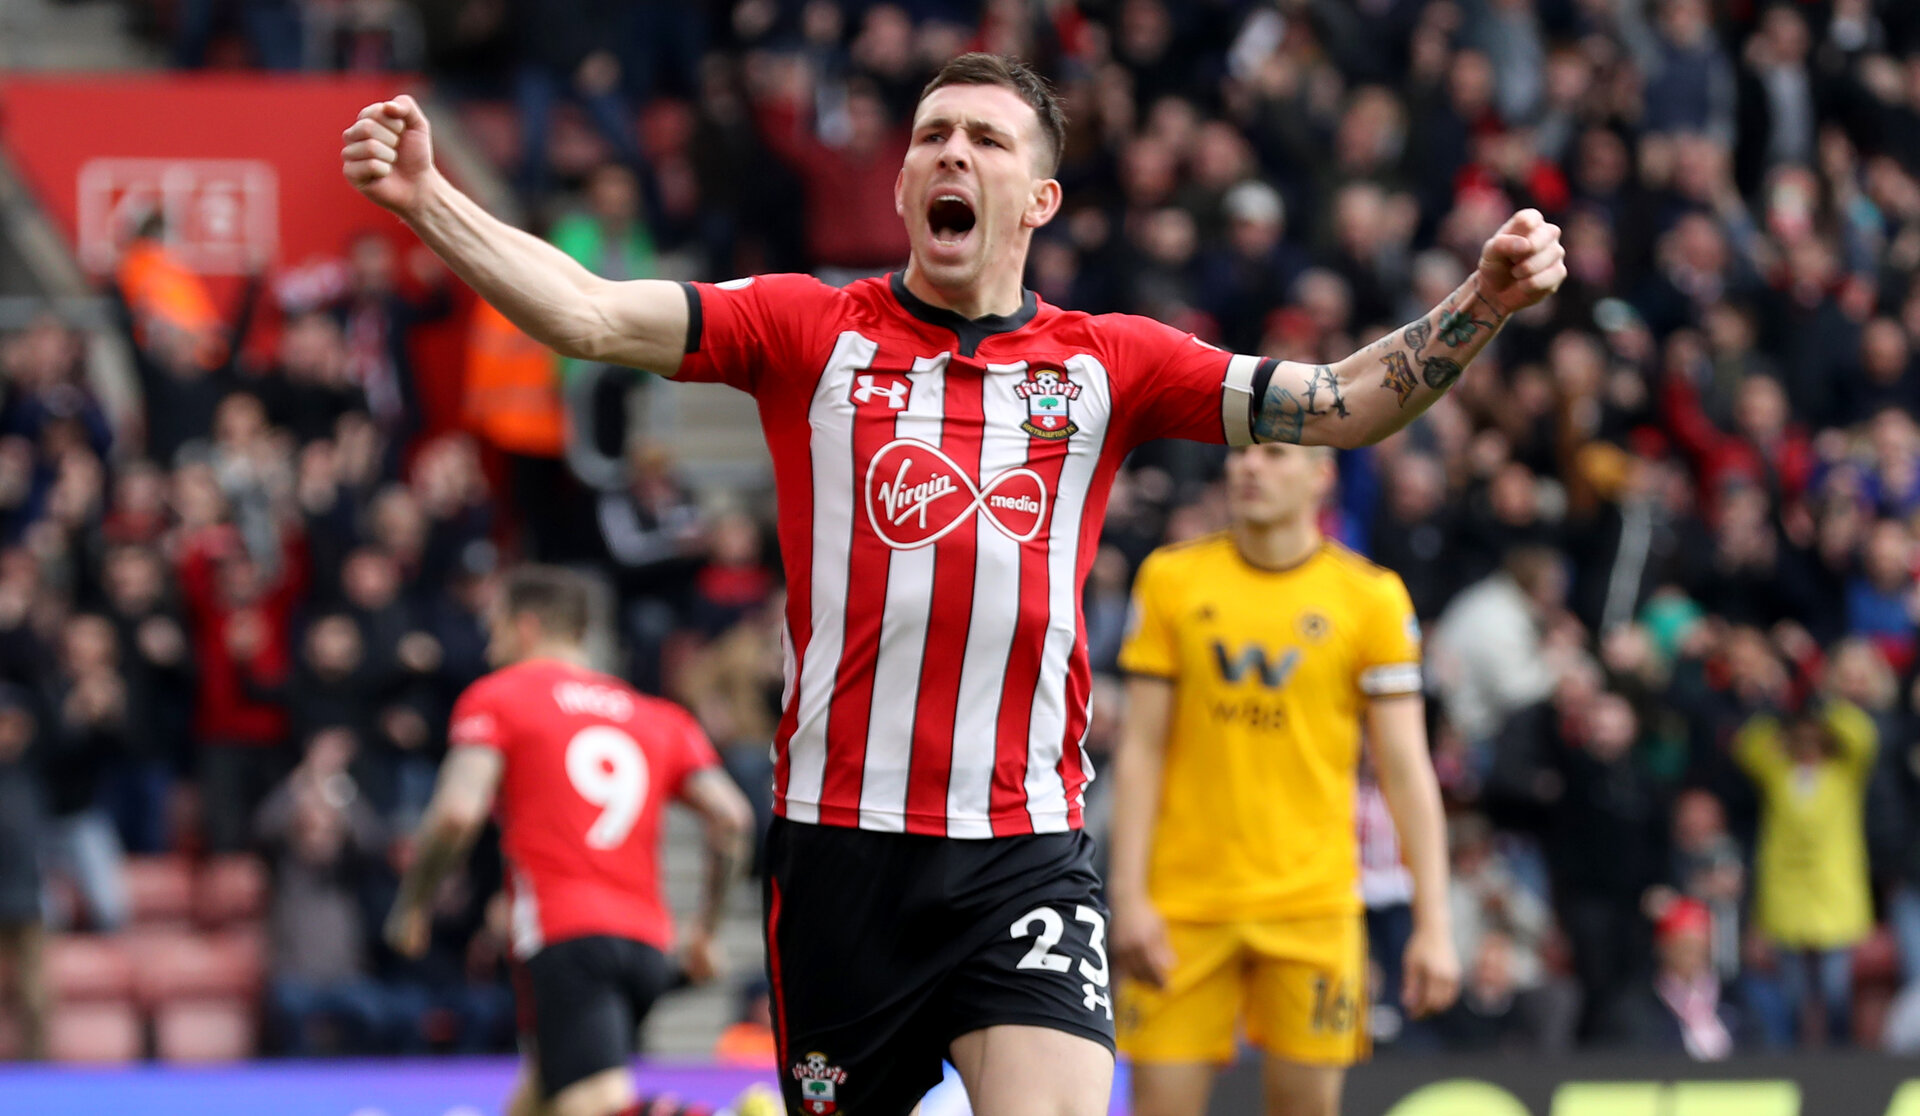 SOUTHAMPTON, ENGLAND - APRIL 13: Pierre-Emile Hojbjerg of Southampton celebrates during the Premier League match between Southampton FC and Wolverhampton Wanderers at St Mary's Stadium on April 13, 2019 in Southampton, United Kingdom. (Photo by Matt Watson/Southampton FC via Getty Images)